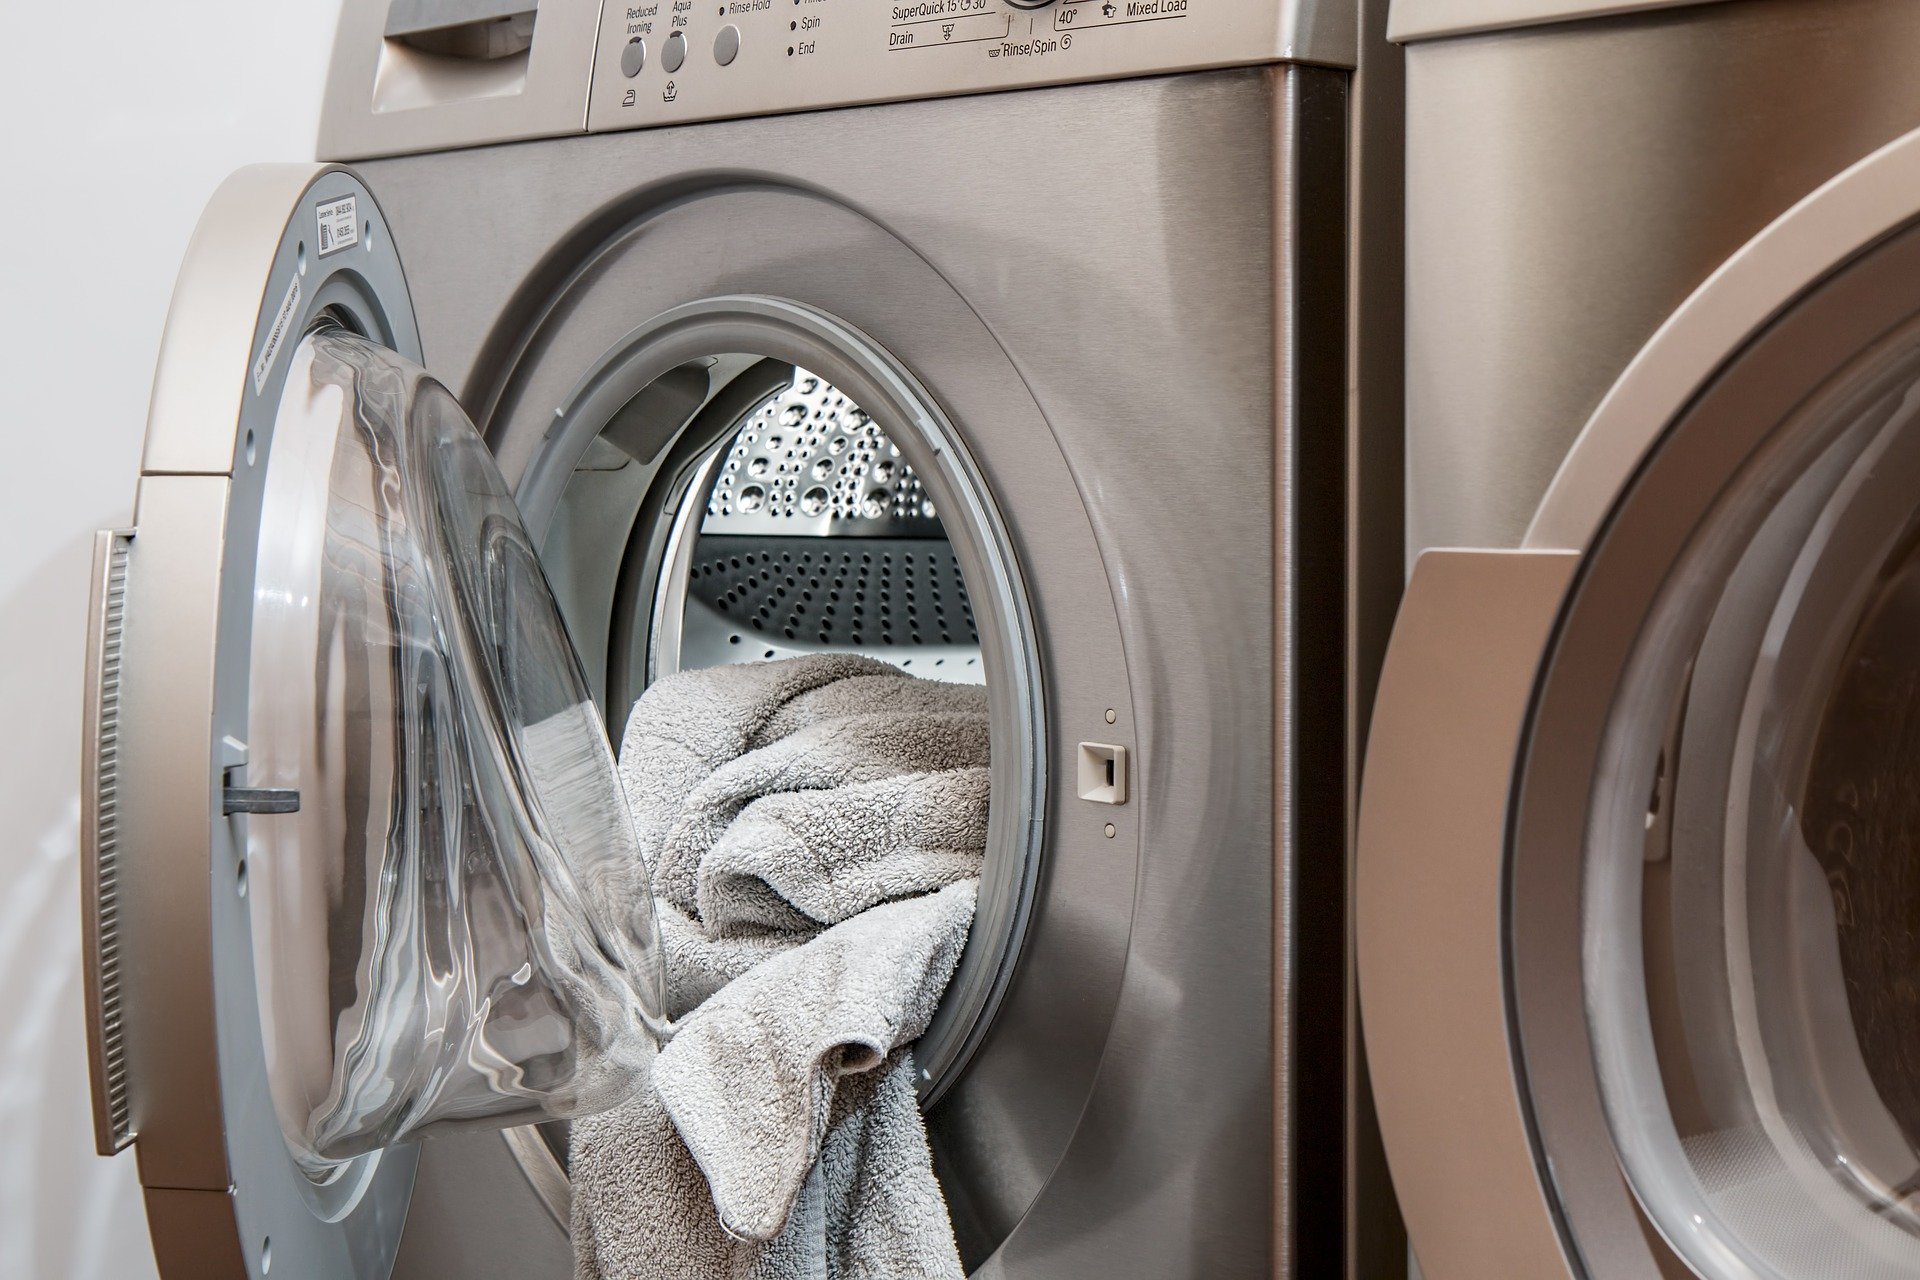 6 Small Laundry Room Design Ideas To Make The Most Of Limited Space